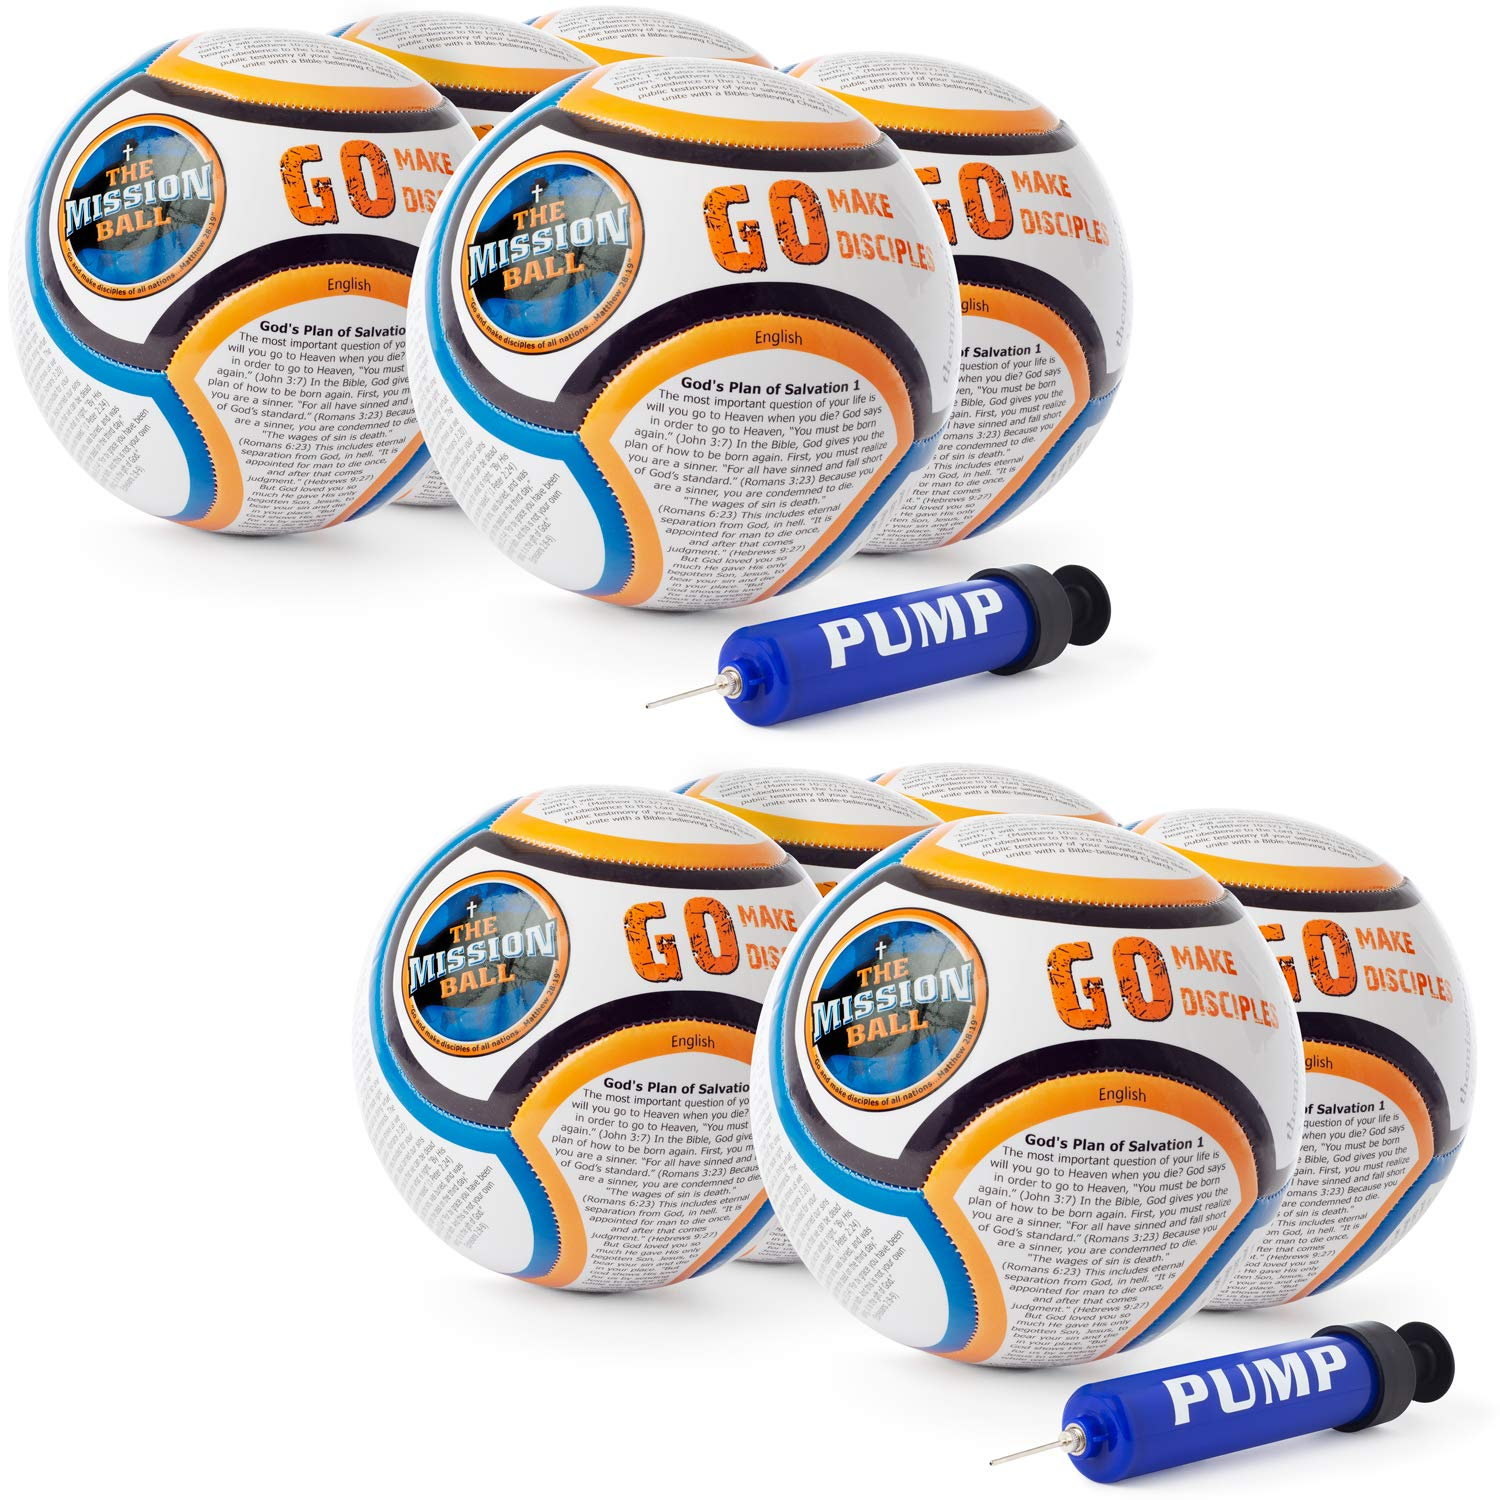 The Mission Ball (English Soccer Ball - Biblical Gospel Sharing Tool Using The World's Most Popular Sport to Explain Christ - Perfect for Mission Trips, Shoeboxes, VBS, and Gifts (10 Pack)